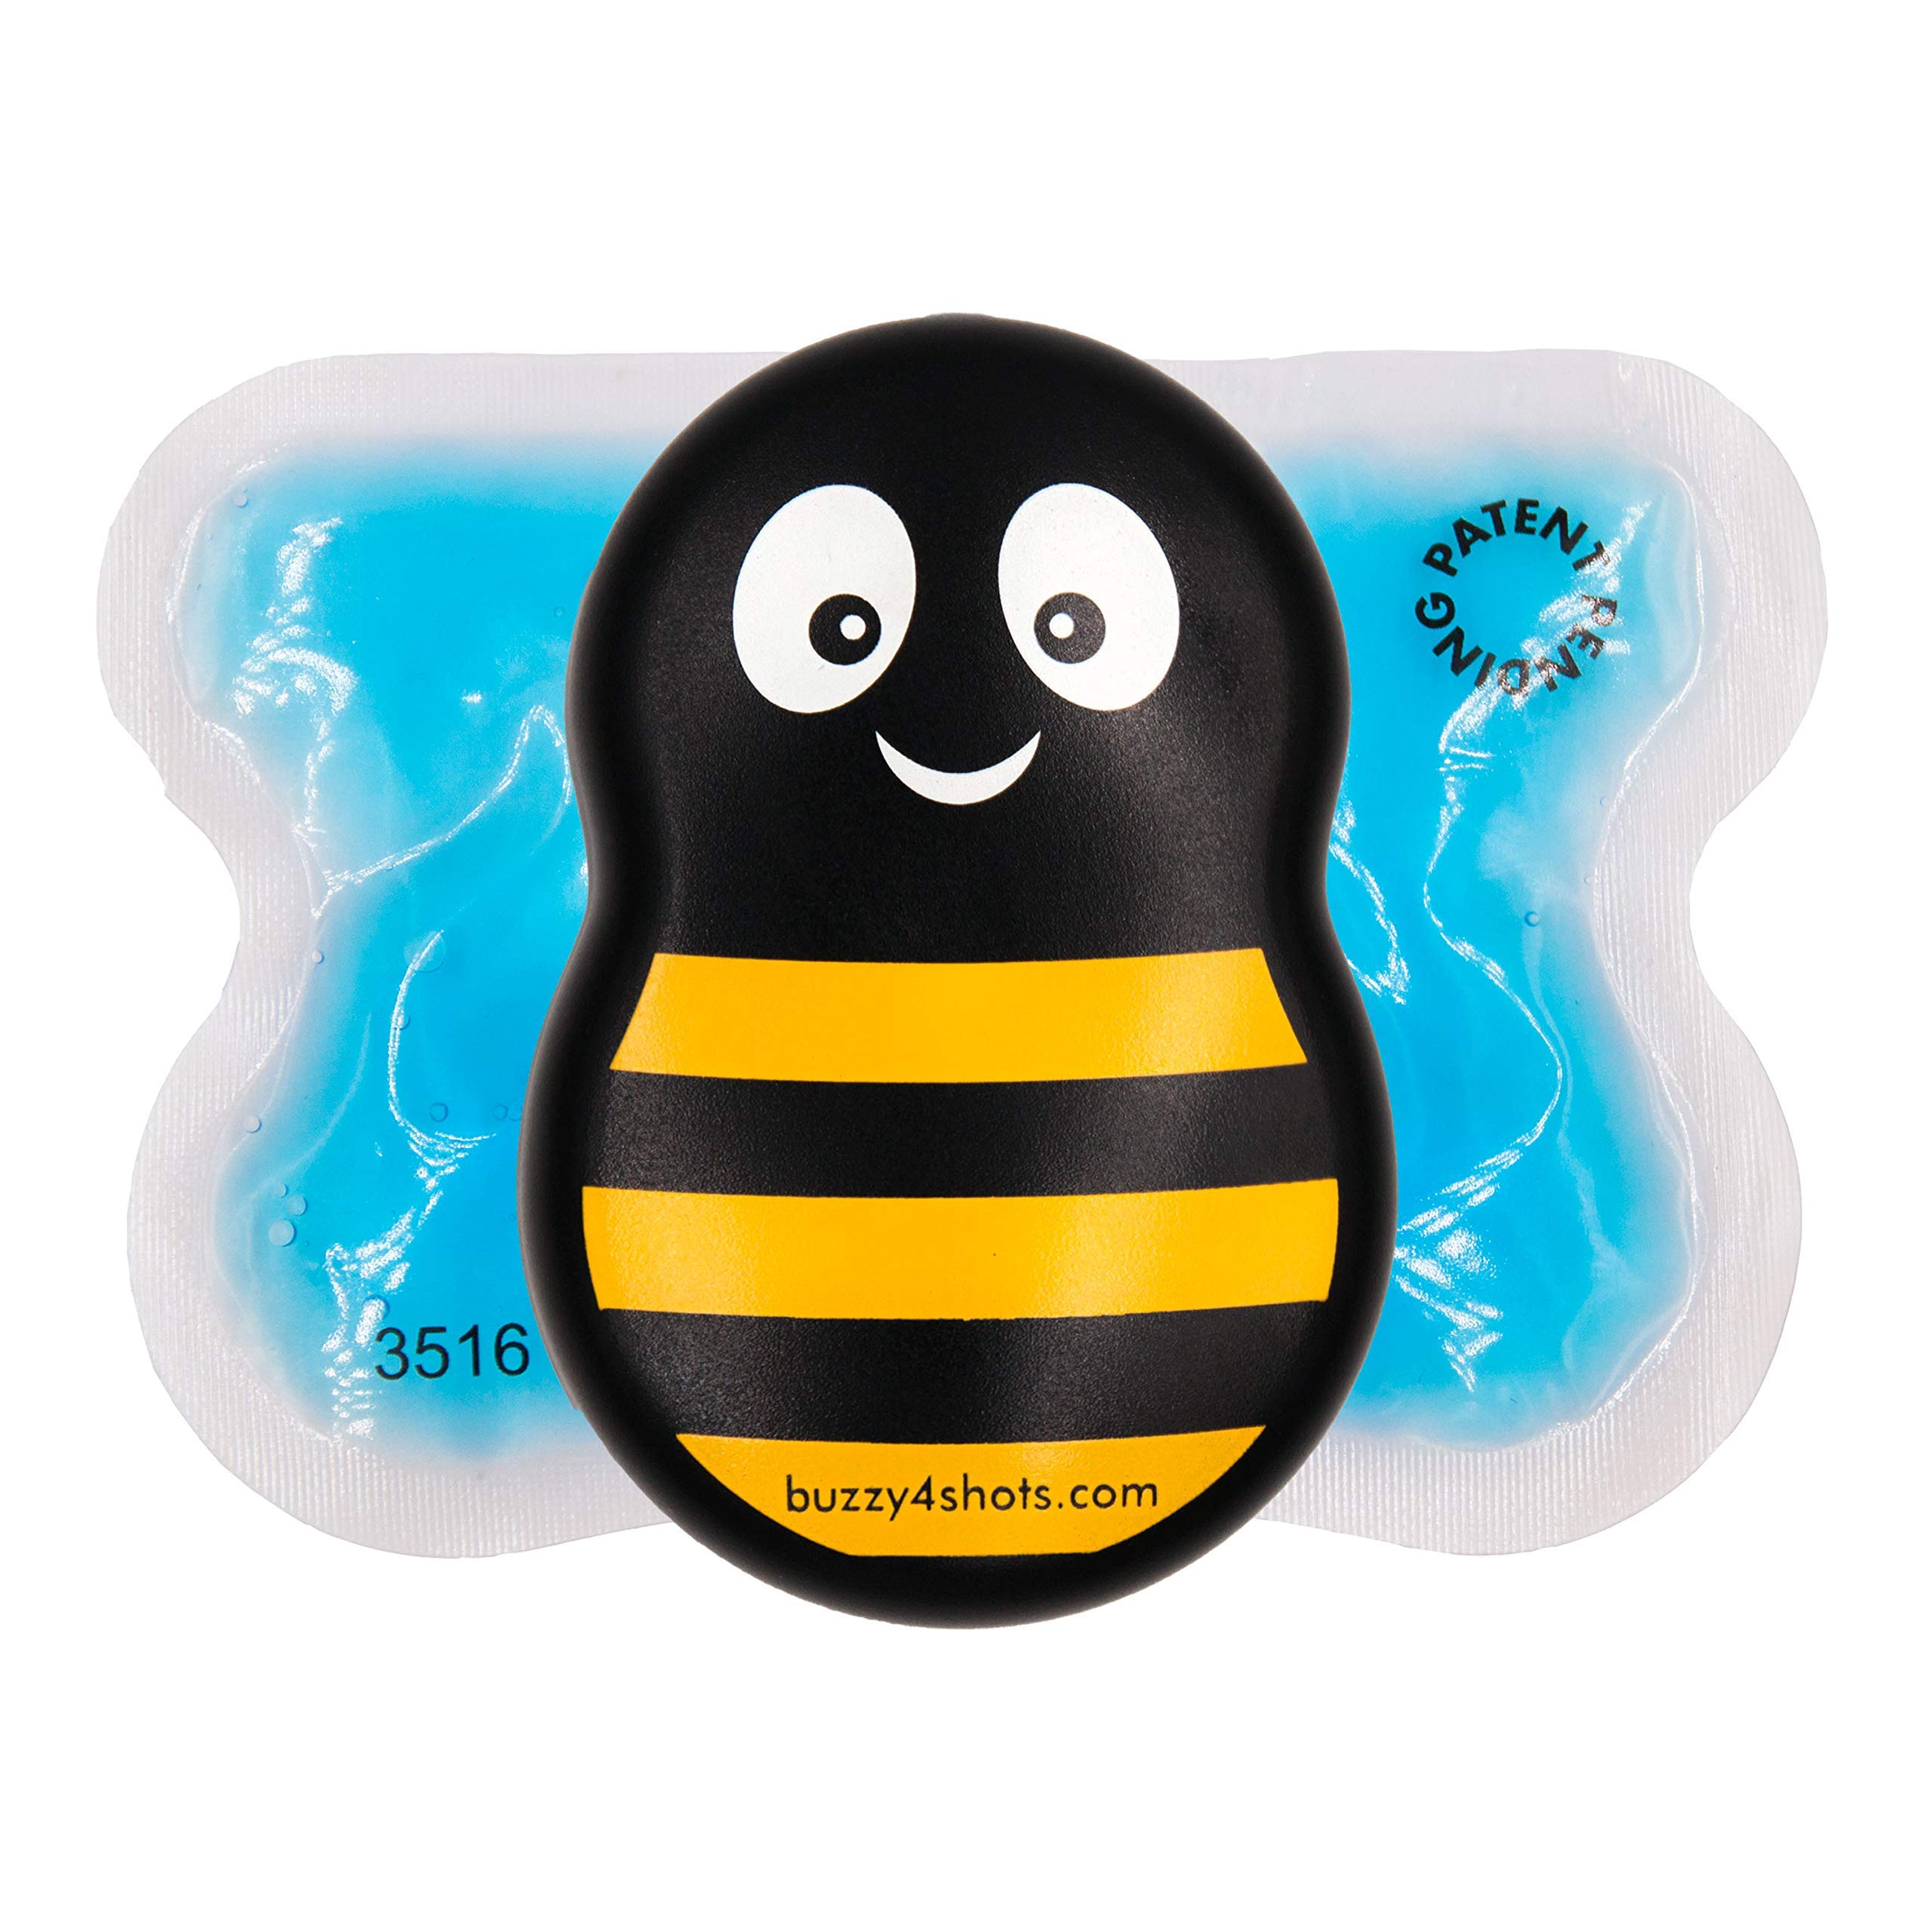 Buzzy® Mini Healthcare - For Injections, Vaccinations, Office Procedures - Professional and Multi-Patient Use - Bee Striped Design by Buzzy®